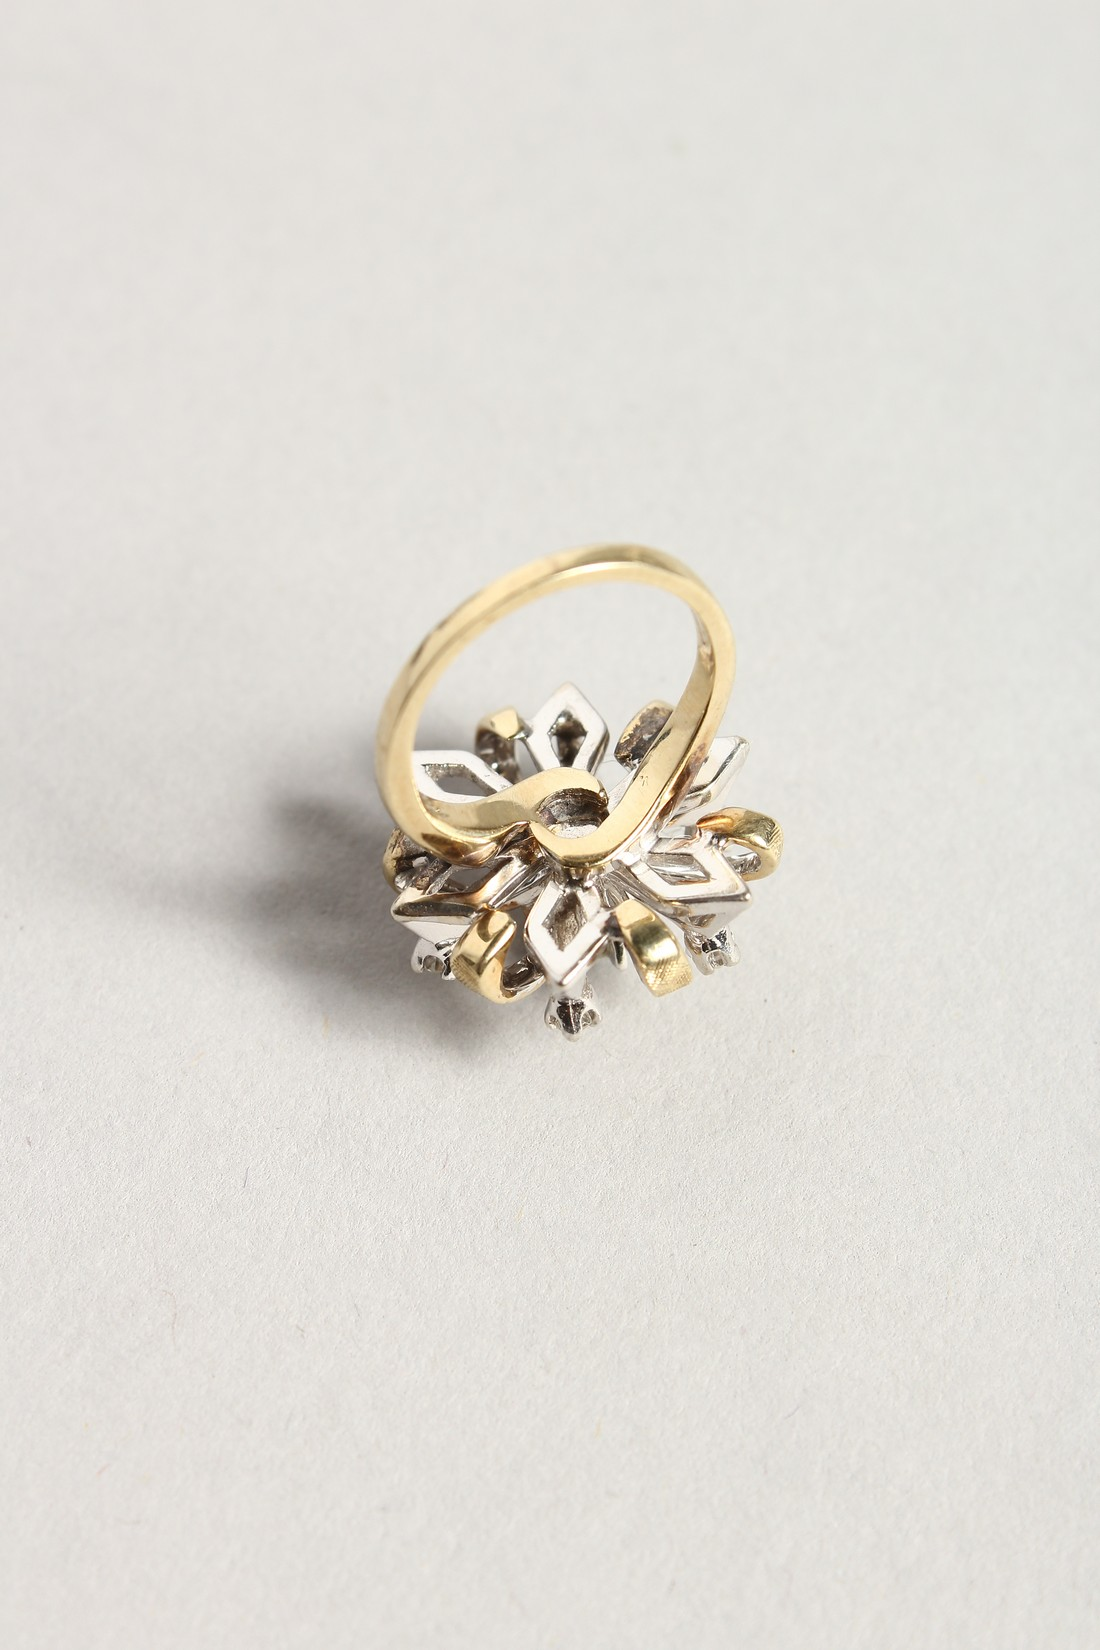 A DIAMOND CLUSTER RING - Image 5 of 6